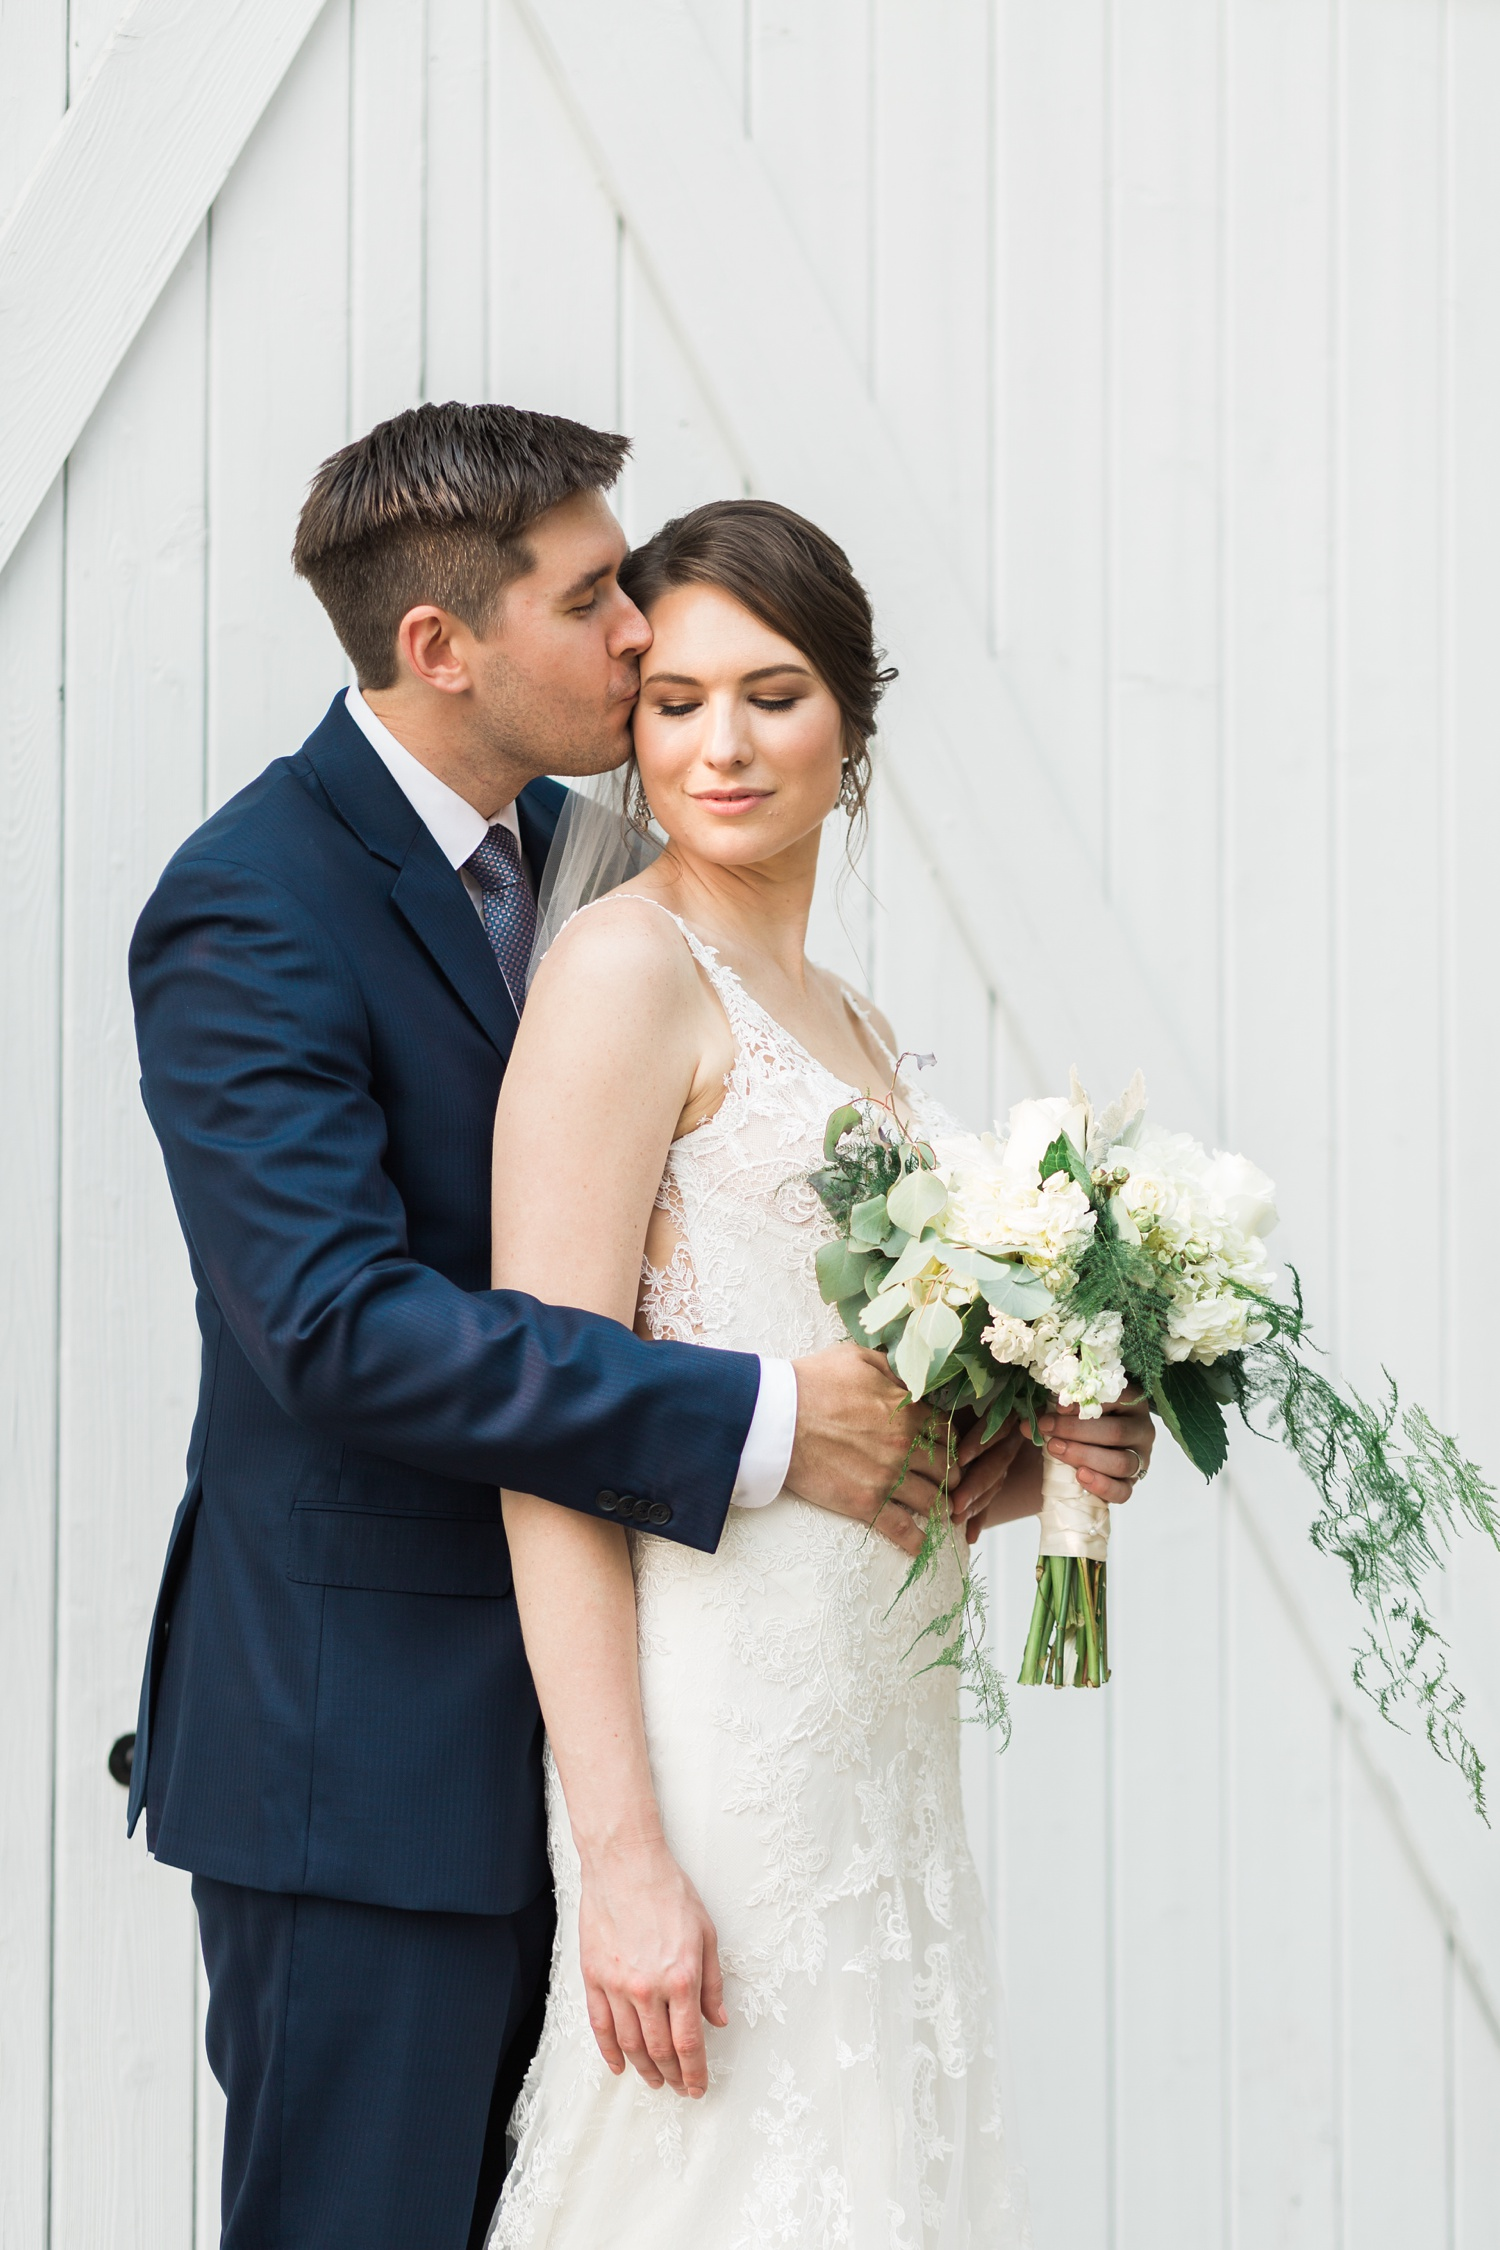 A groom kisses his bride before their wedding at Chateau Lill in Woodinville, a wedding venue near Seattle, WA. | Joanna Monger Photography | Seattle & Snohomish Photographer